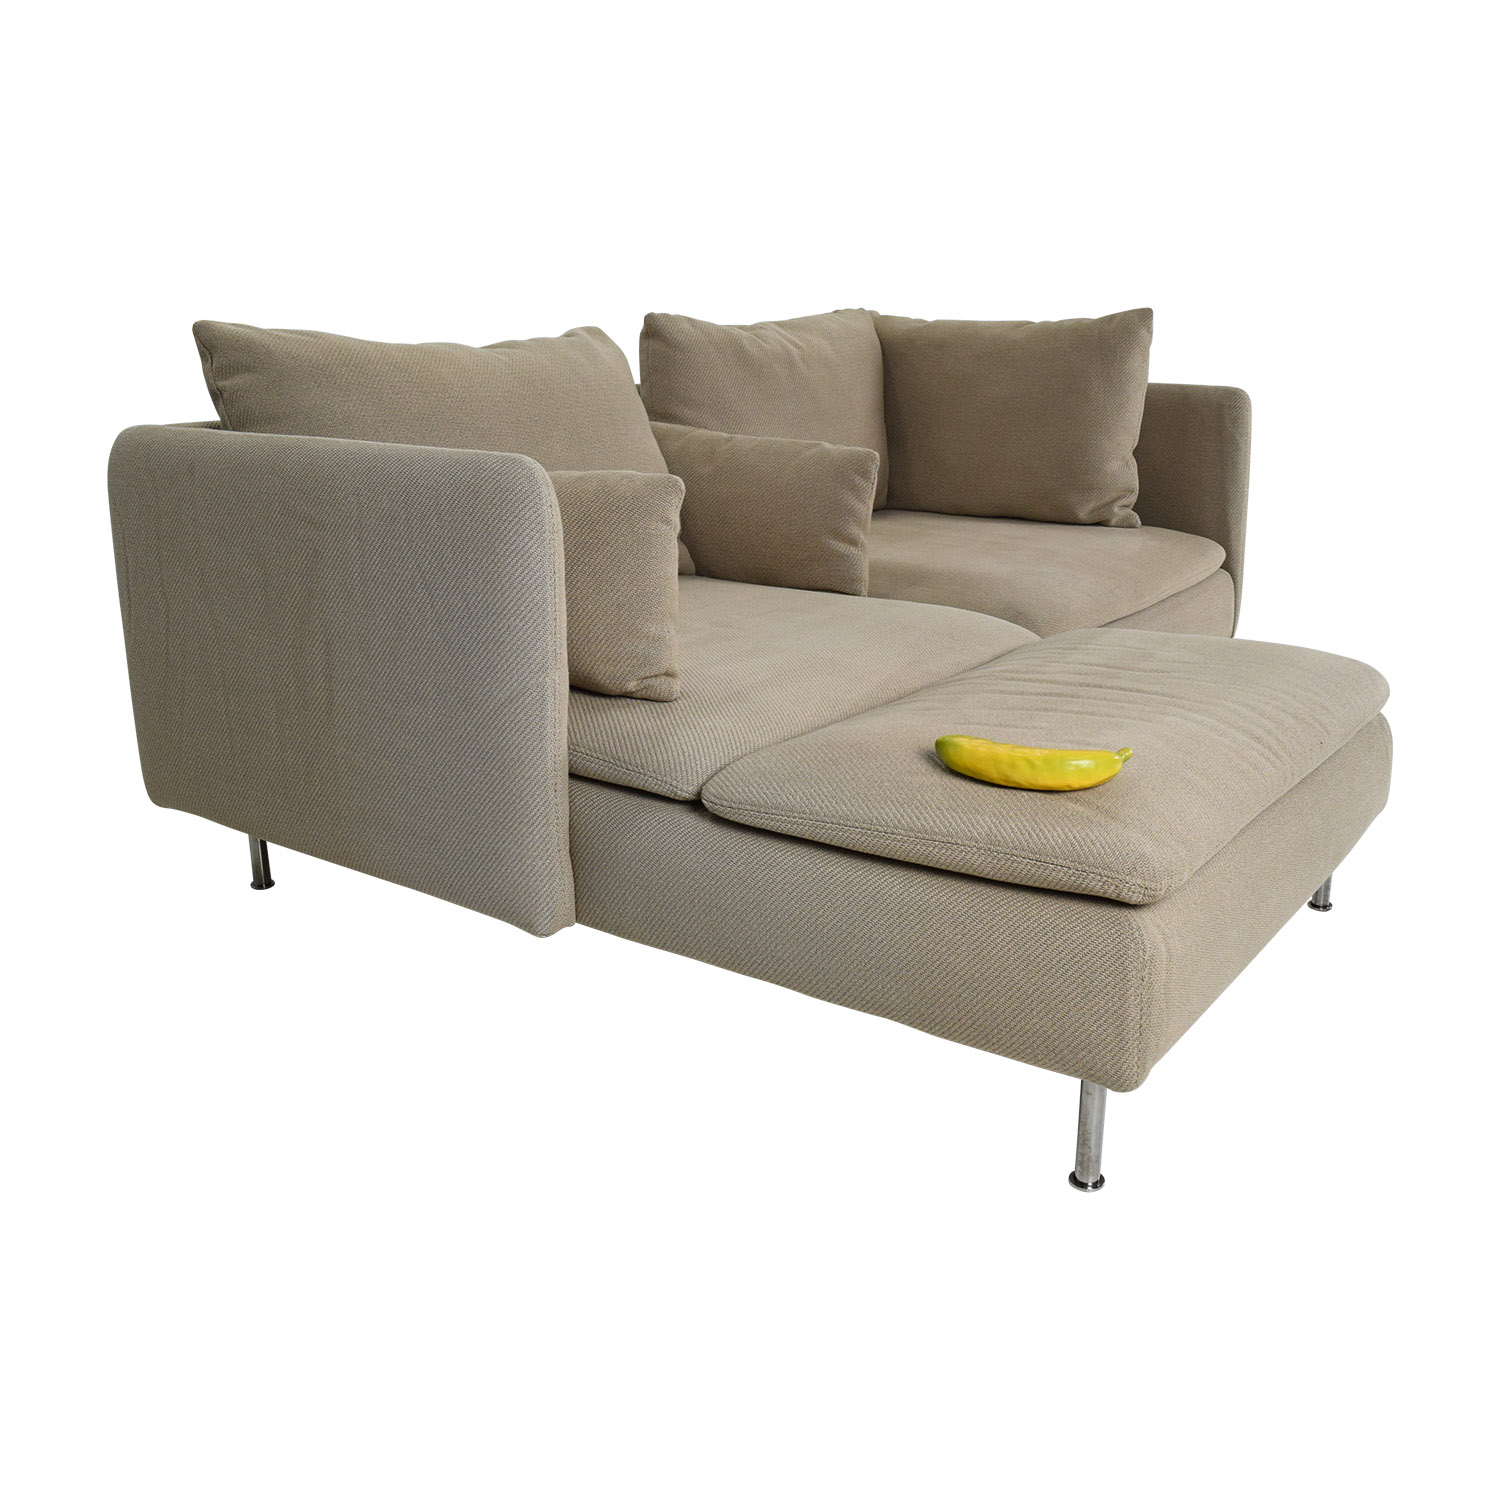 ... Buy Soderhamn Sectional Sofa IKEA Sectionals ...